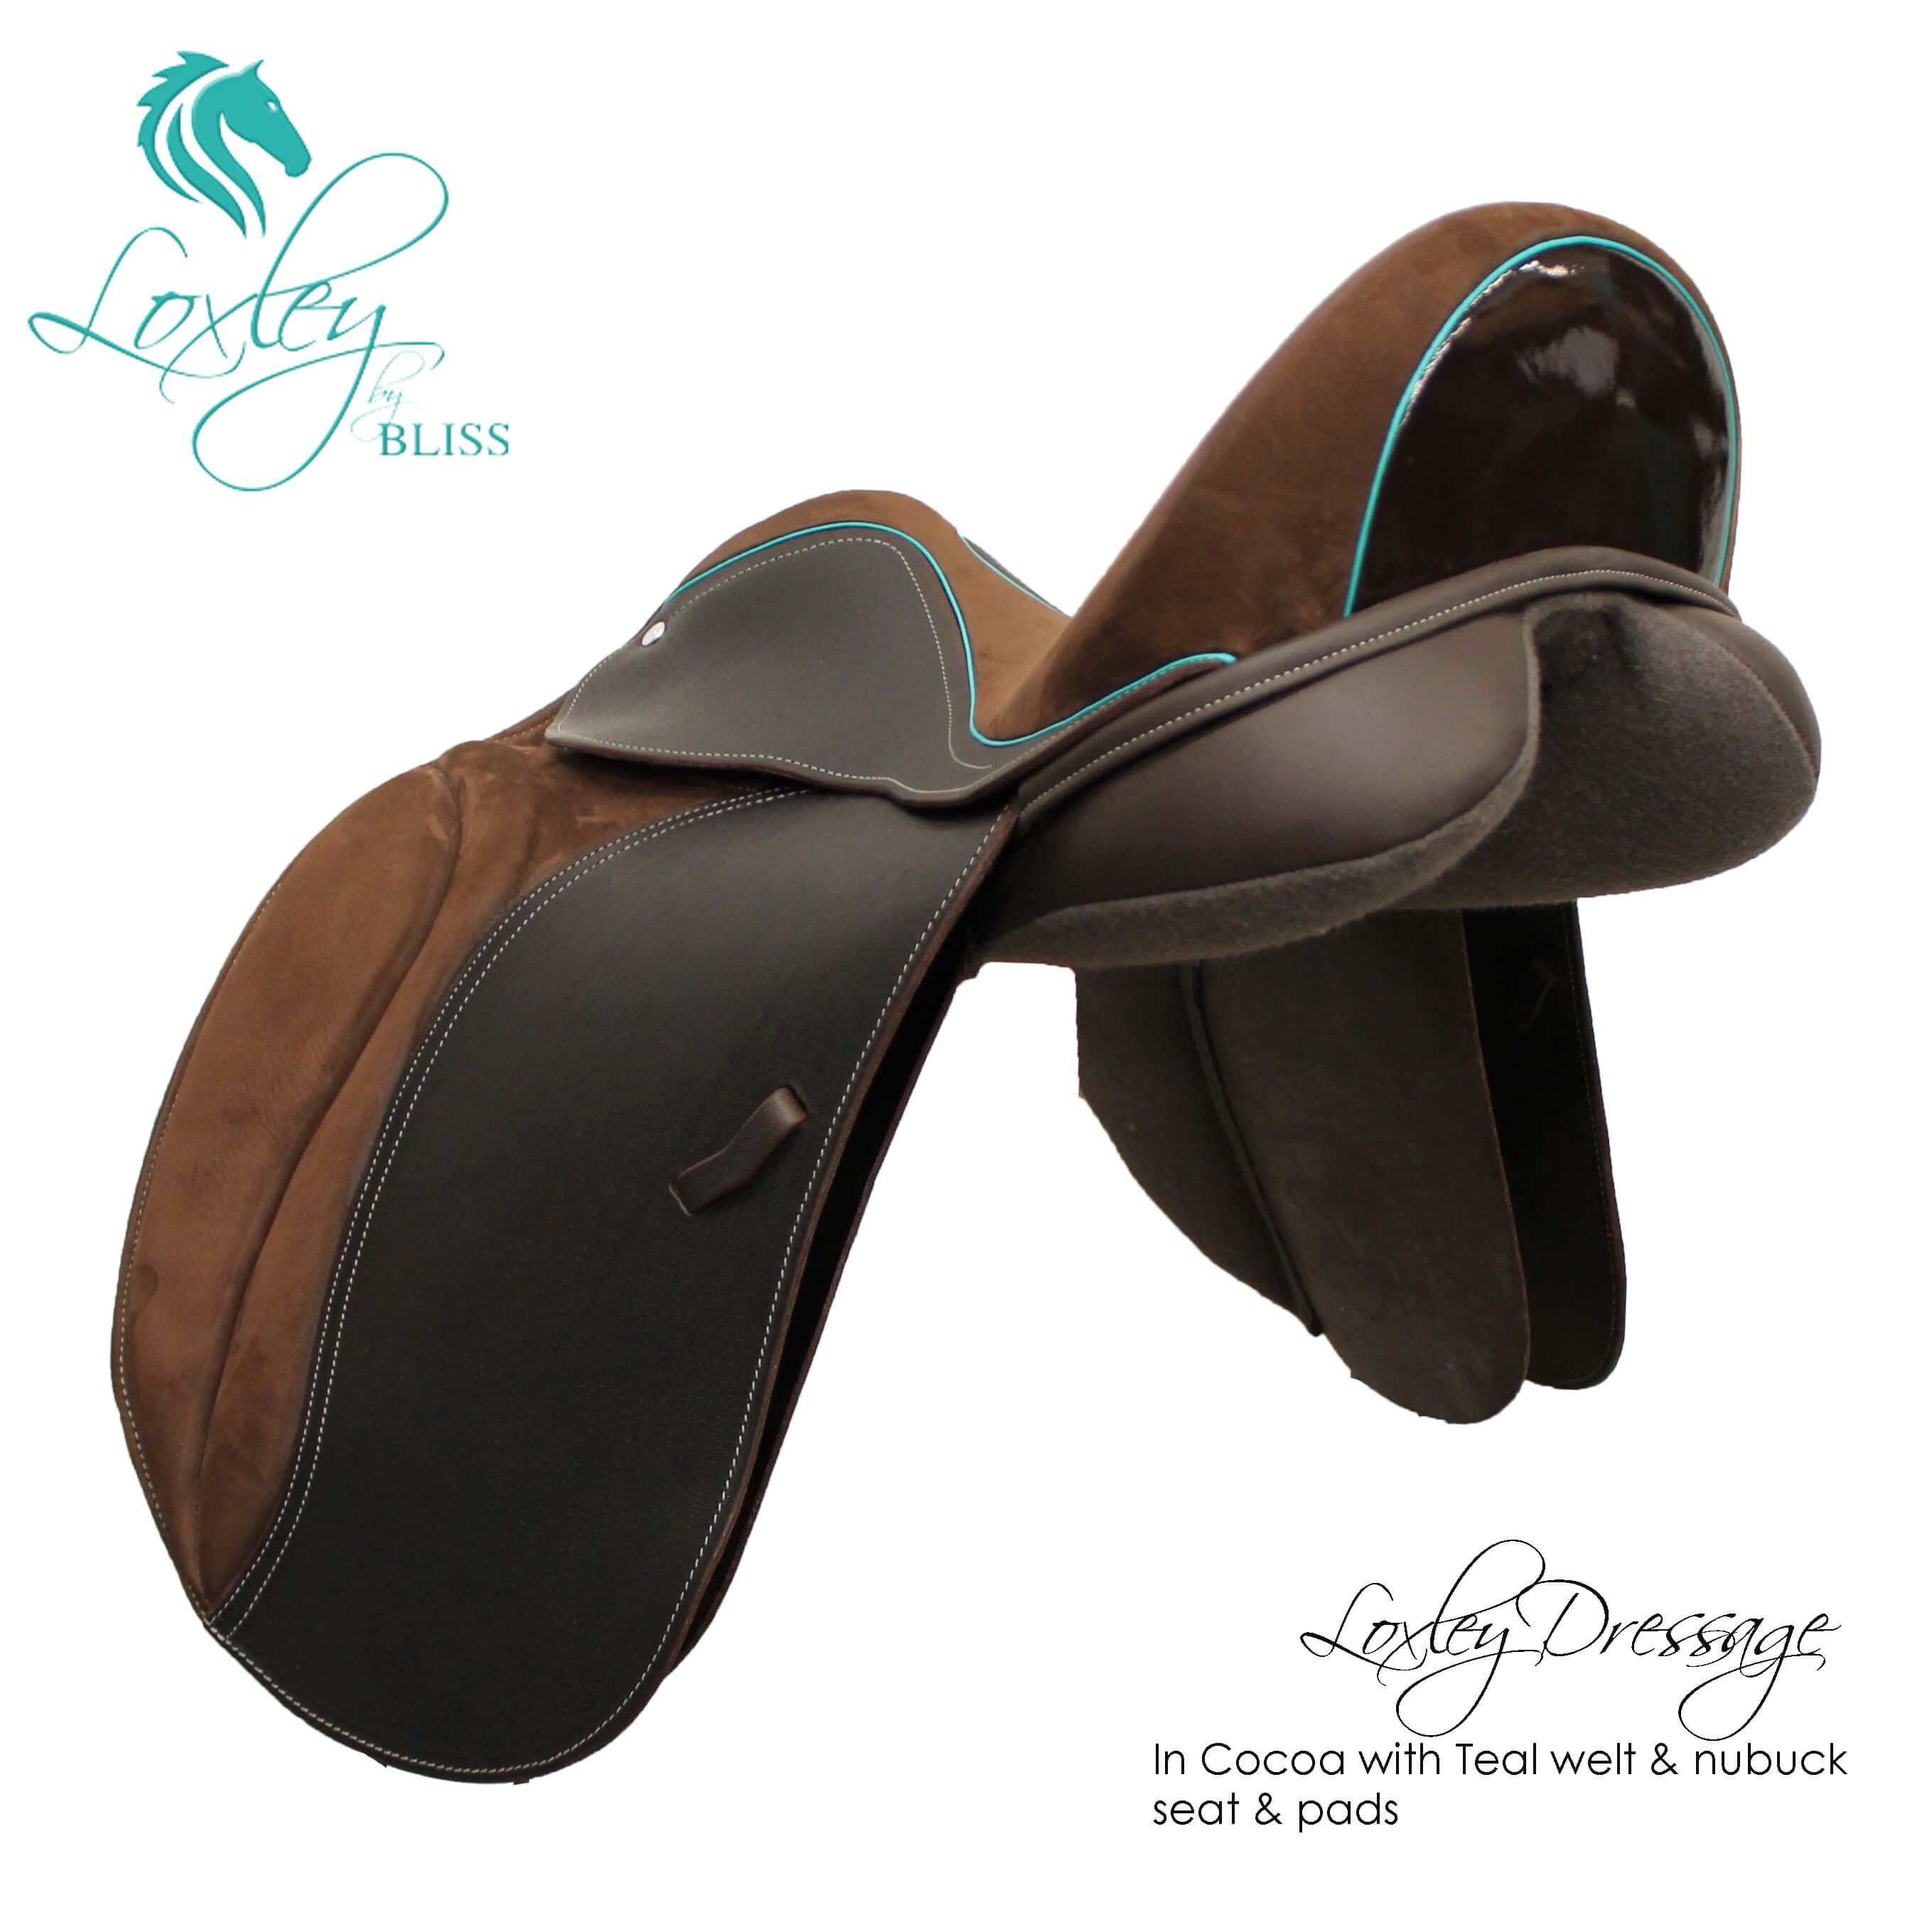 Loxley Dressage Cocoa Teal Nubuck34